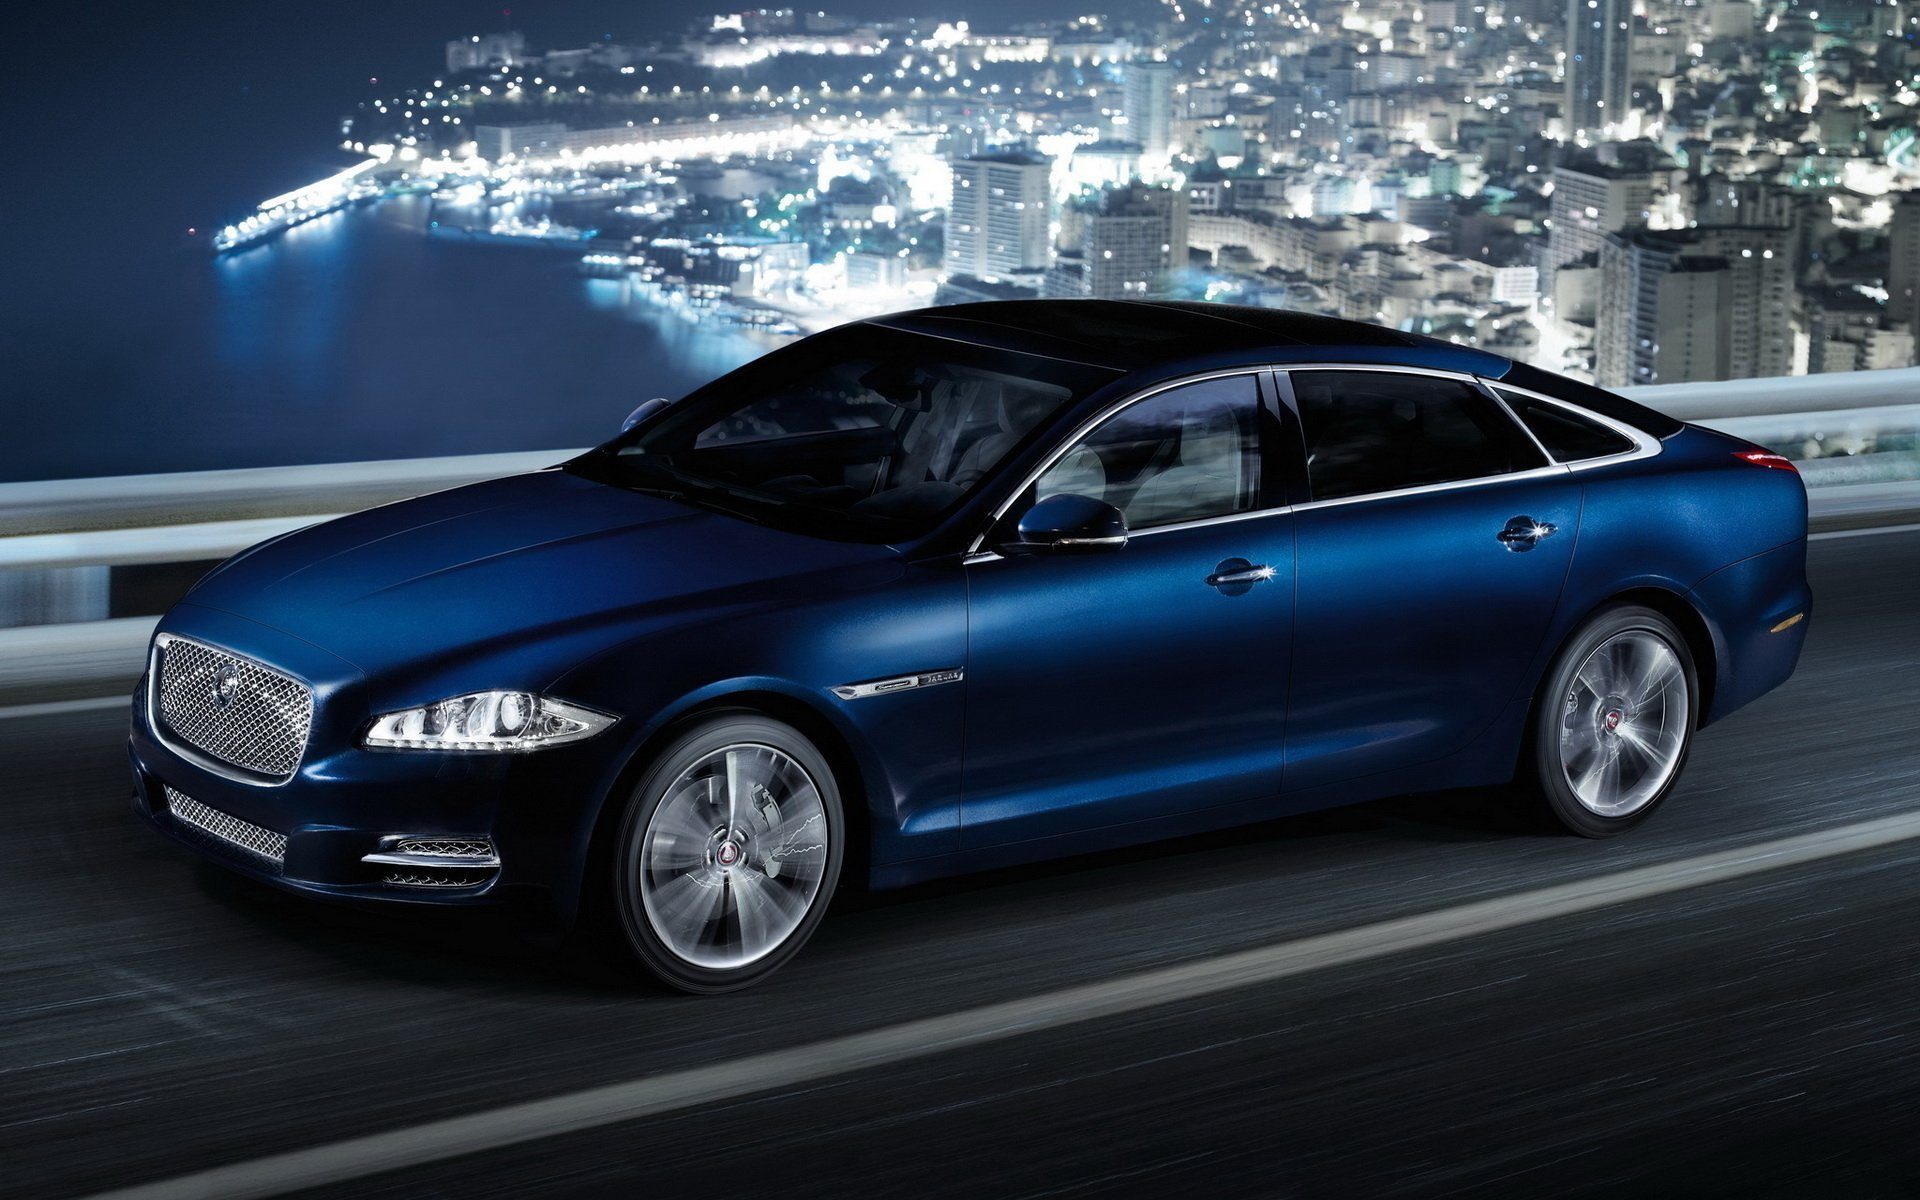 New Jaguar Xj Full Hd Wallpaper And Background Image On This Month